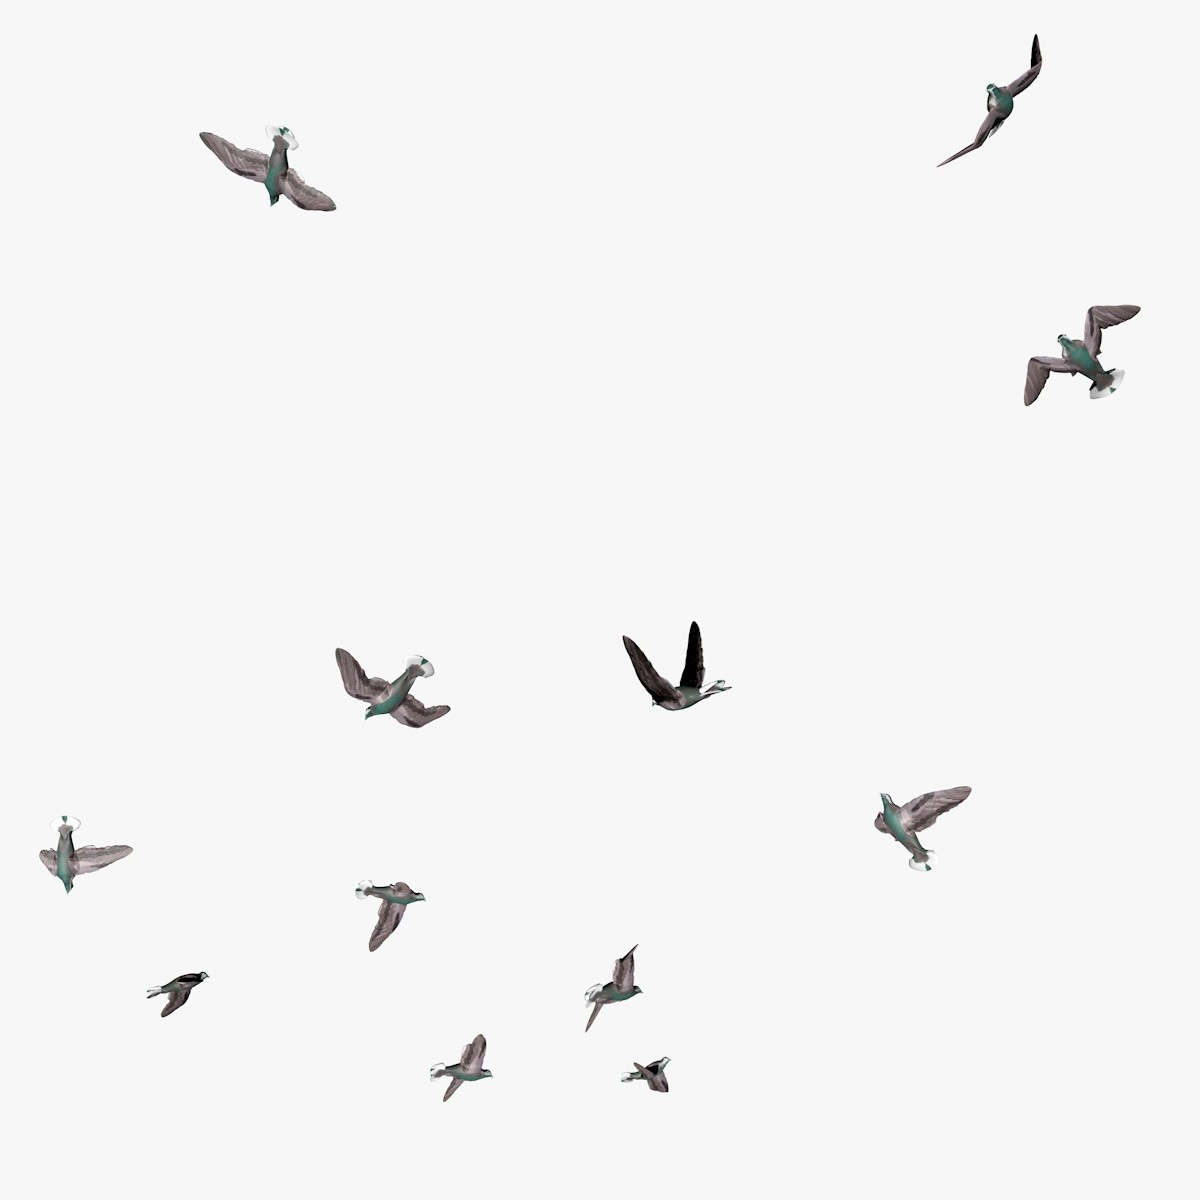 group flying pigeons animation 3d c4d